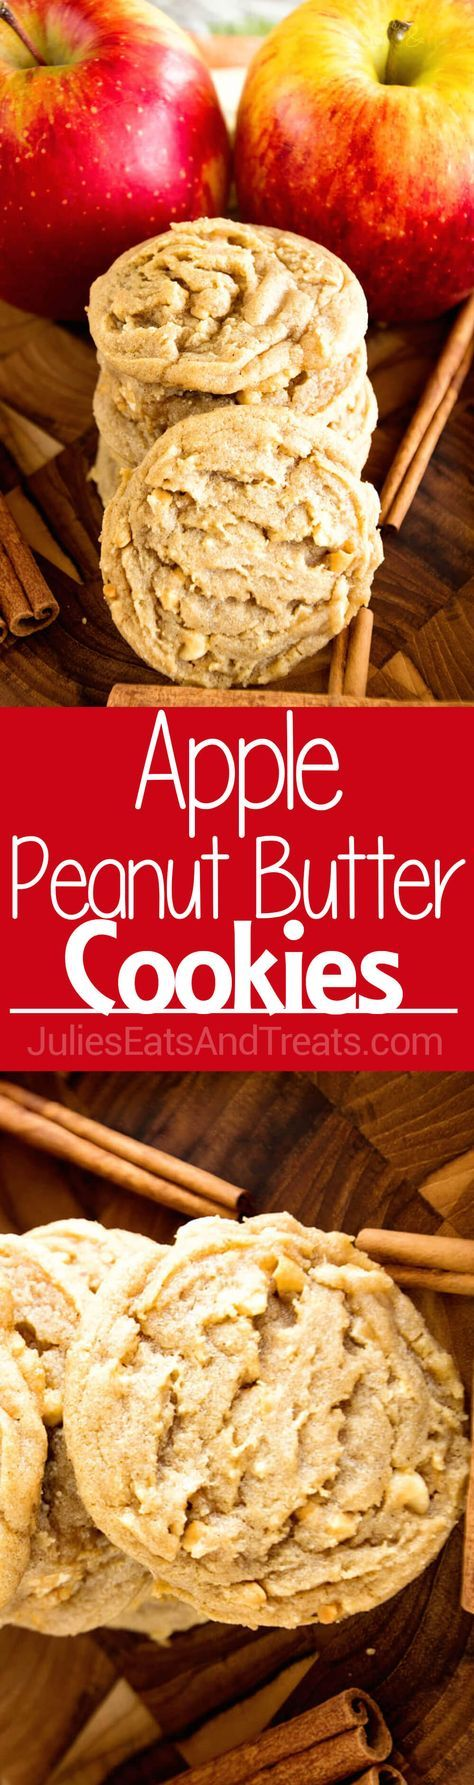 Apple Peanut Butter Cookie Delicious, Soft, Chewy Cookie